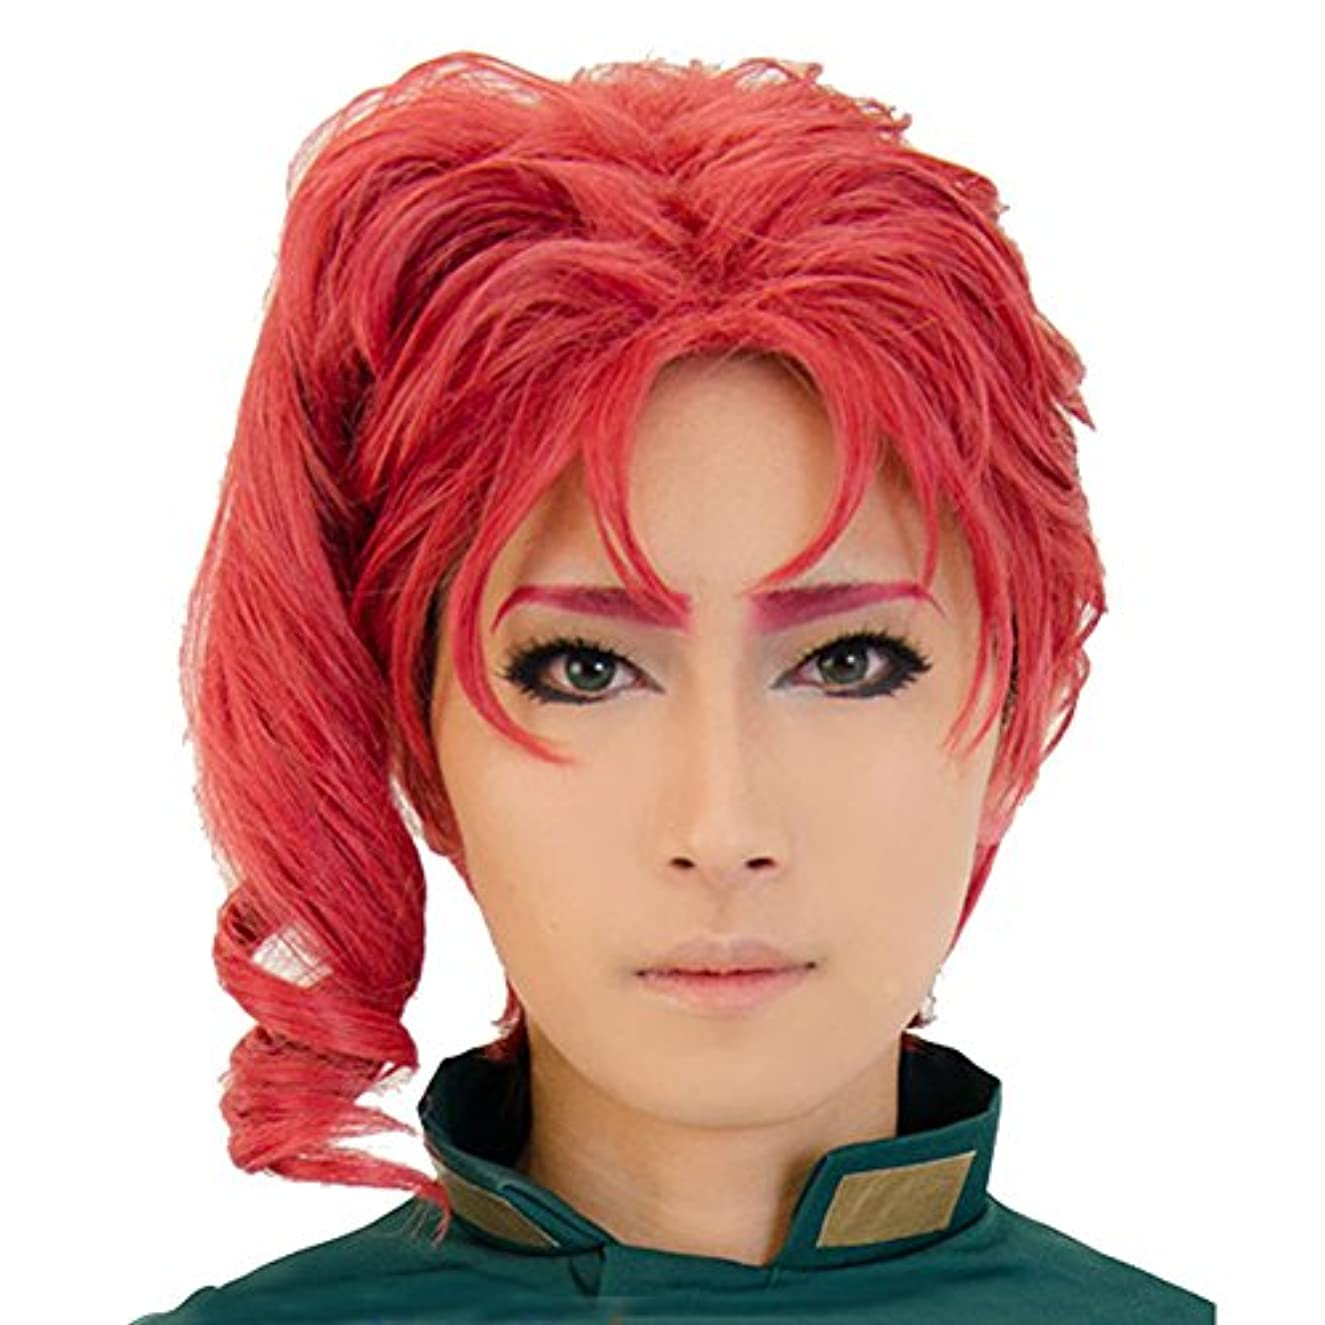 Coslive JOJO's Bizarre Adventure Cosplay Noriaki Kakyoin Prestyled Short Red Curly Wig